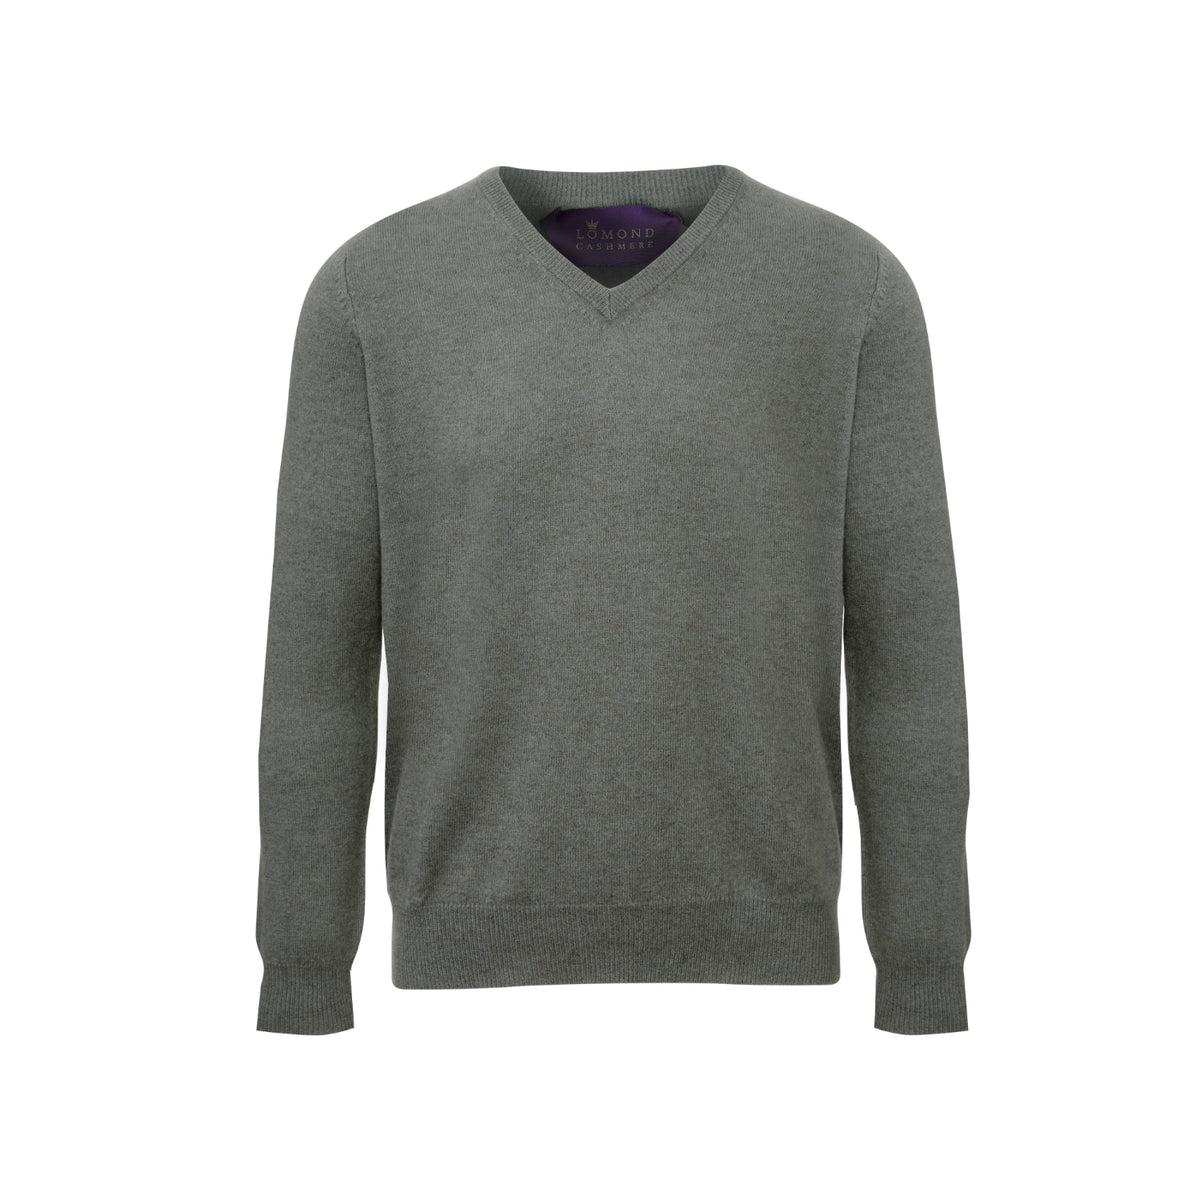 Army Green Mens Cashmere V neck Sweater | Jumper | buy now at The Cashmere Choice London